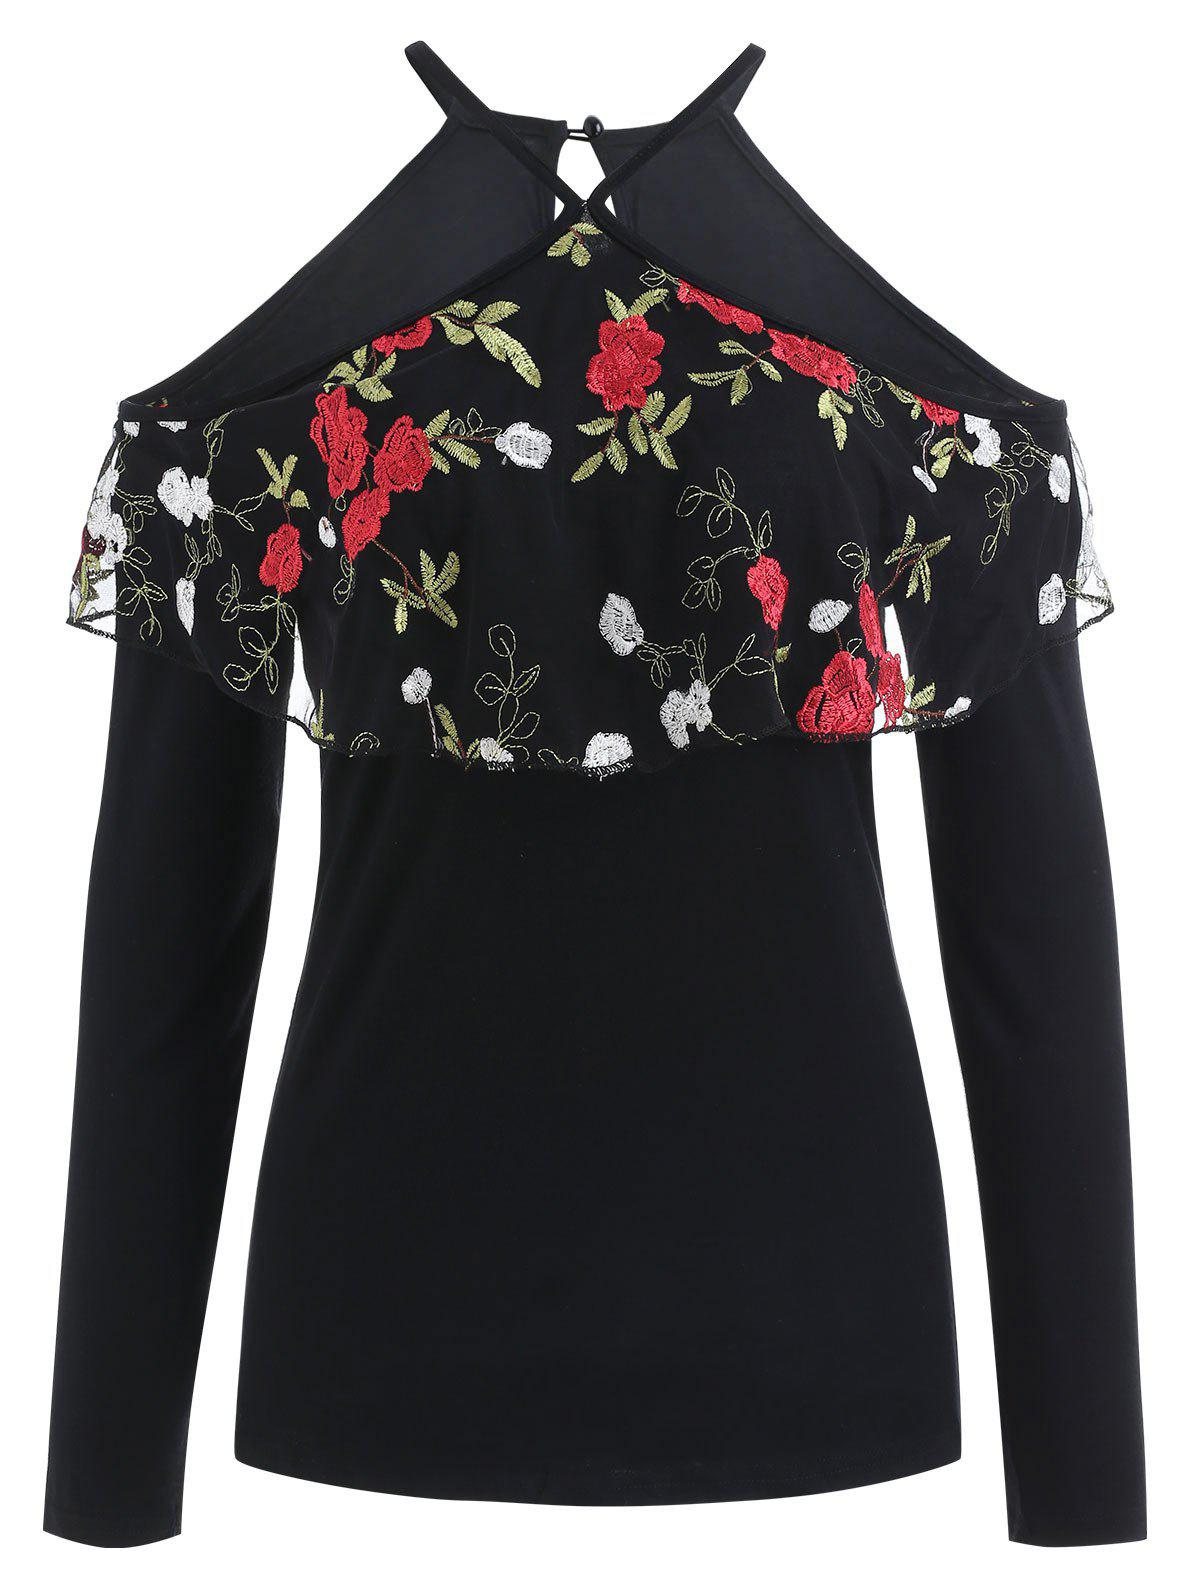 Flowered Flounce Overlay Long Sleeve Top - BLACK 2XL